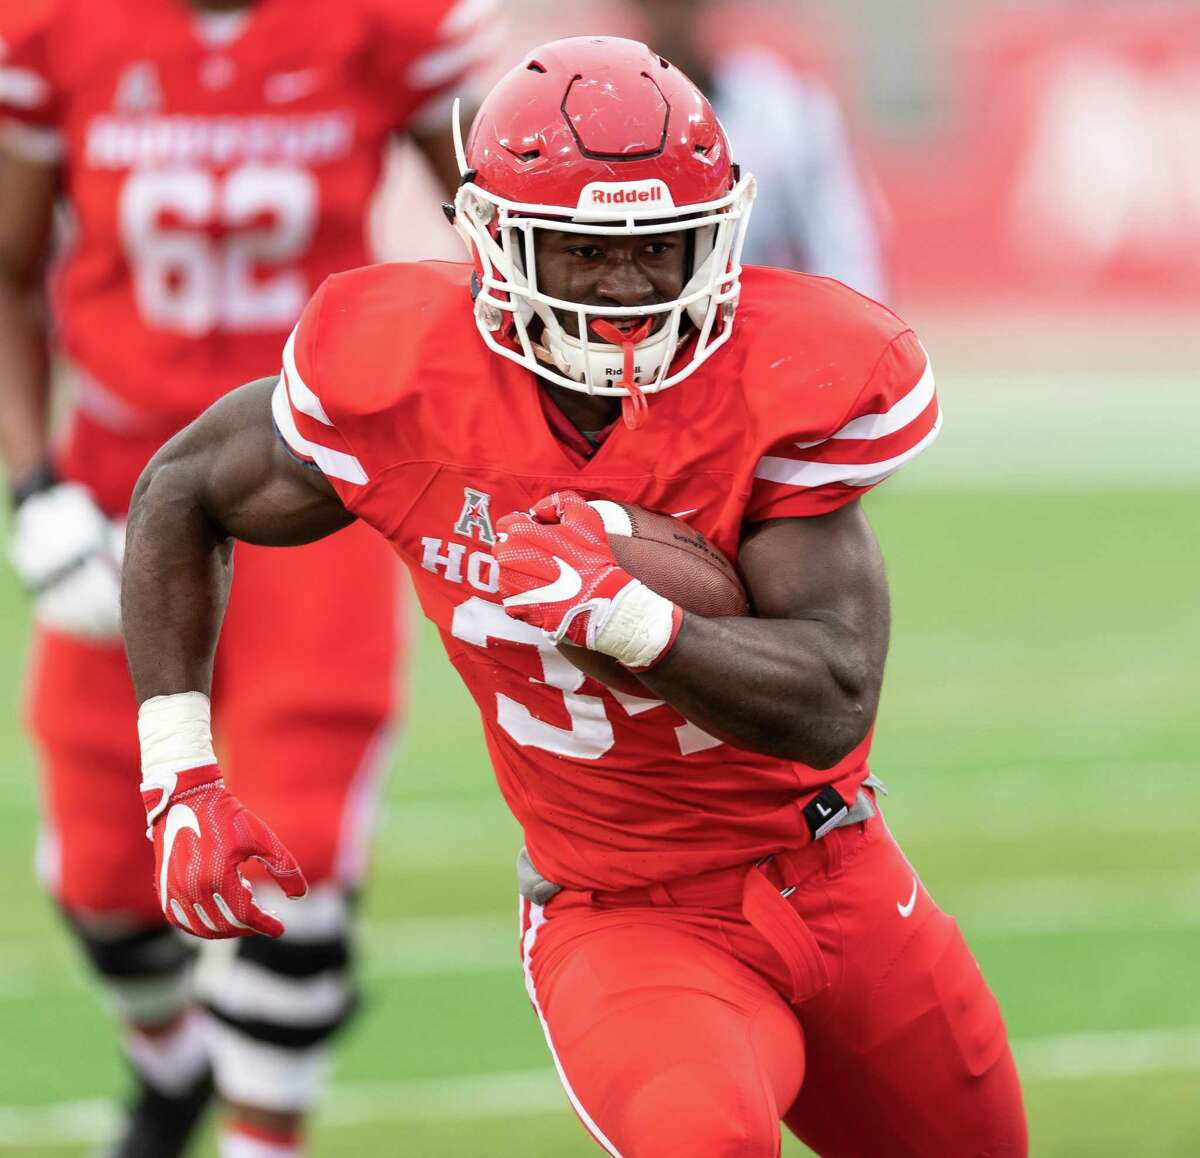 Mulbah Car is back for a sixth season as the 'old man' of the UH offense.